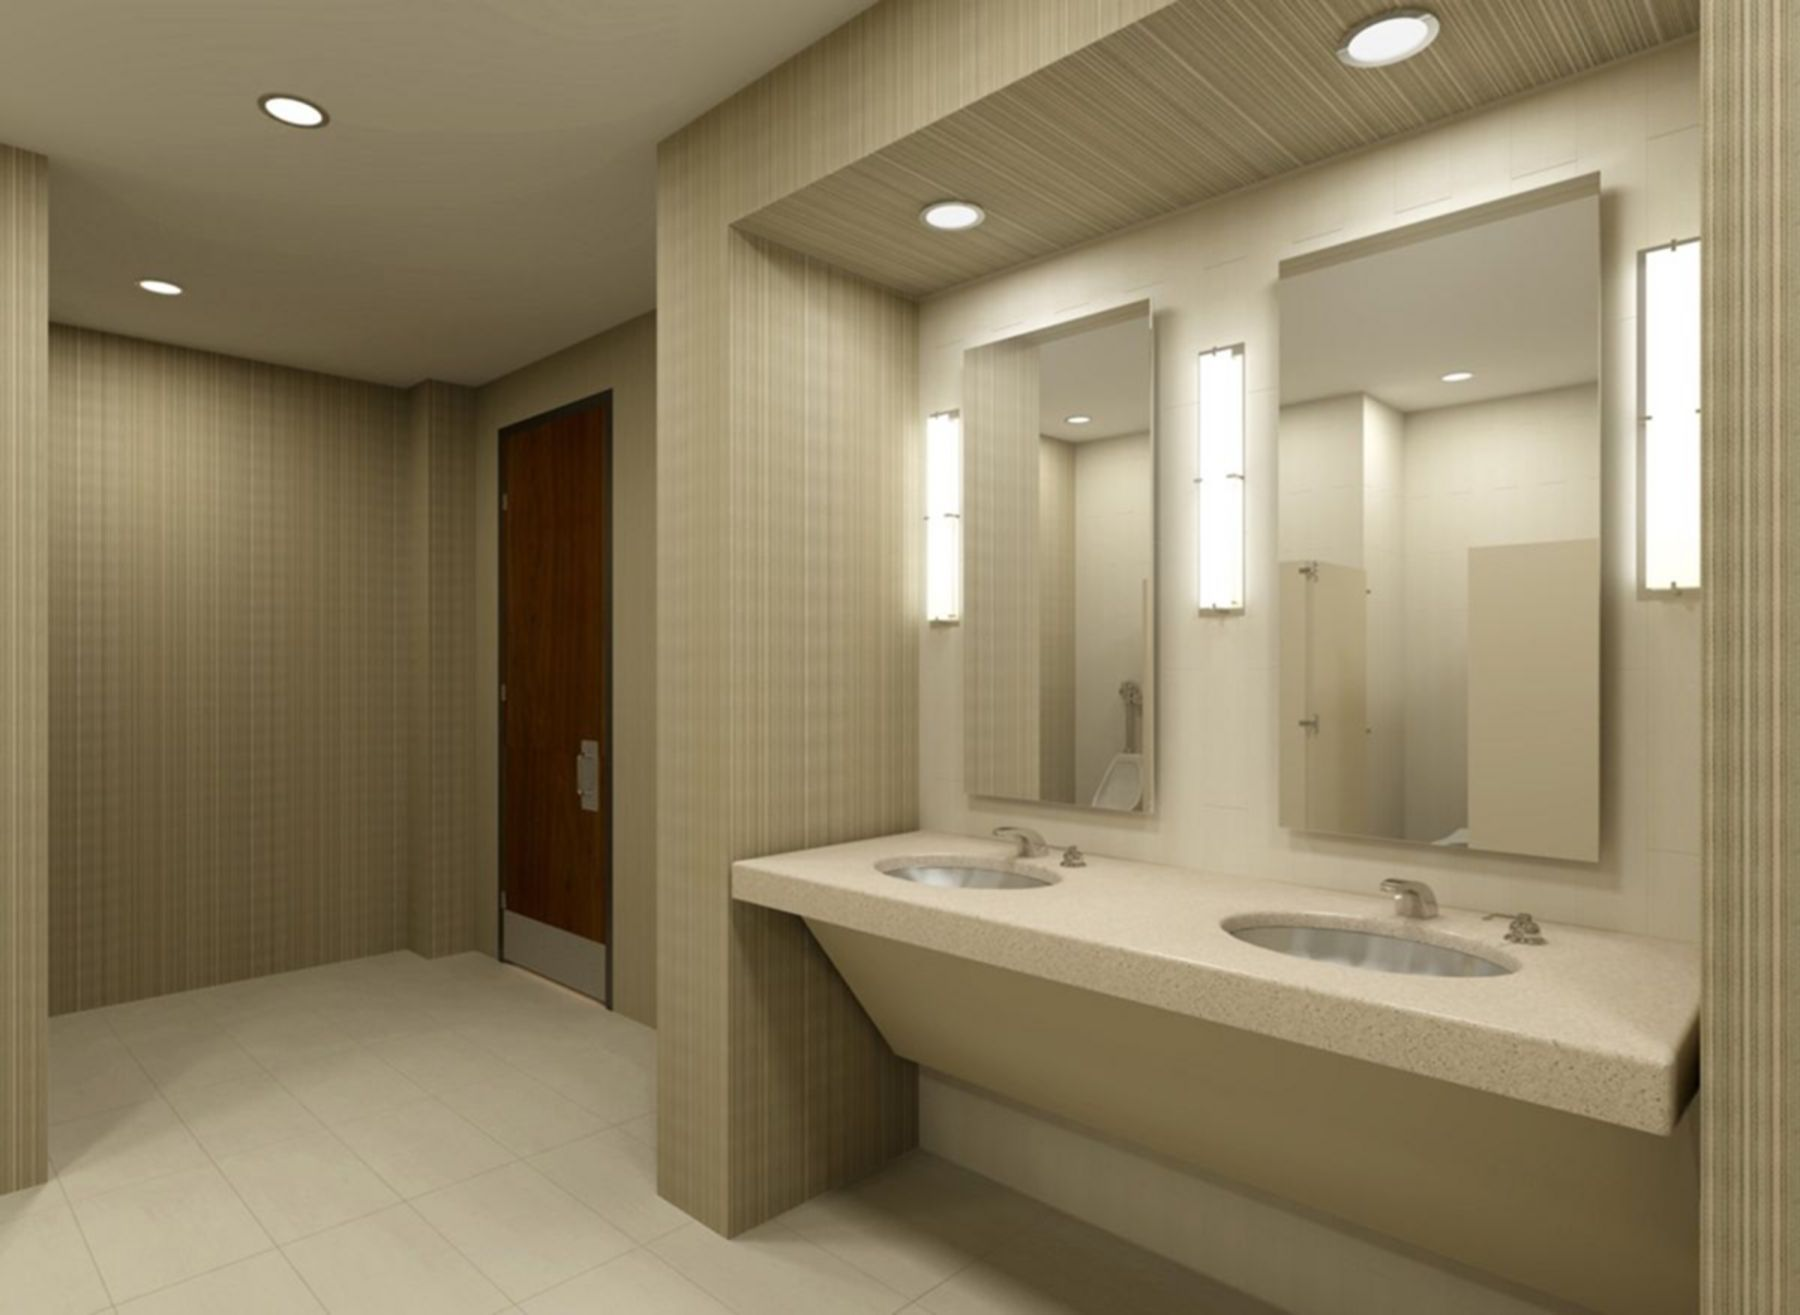 8 Industrial Bathroom Design Ideas For Your Modern Home Commercial Designs Restroom Office